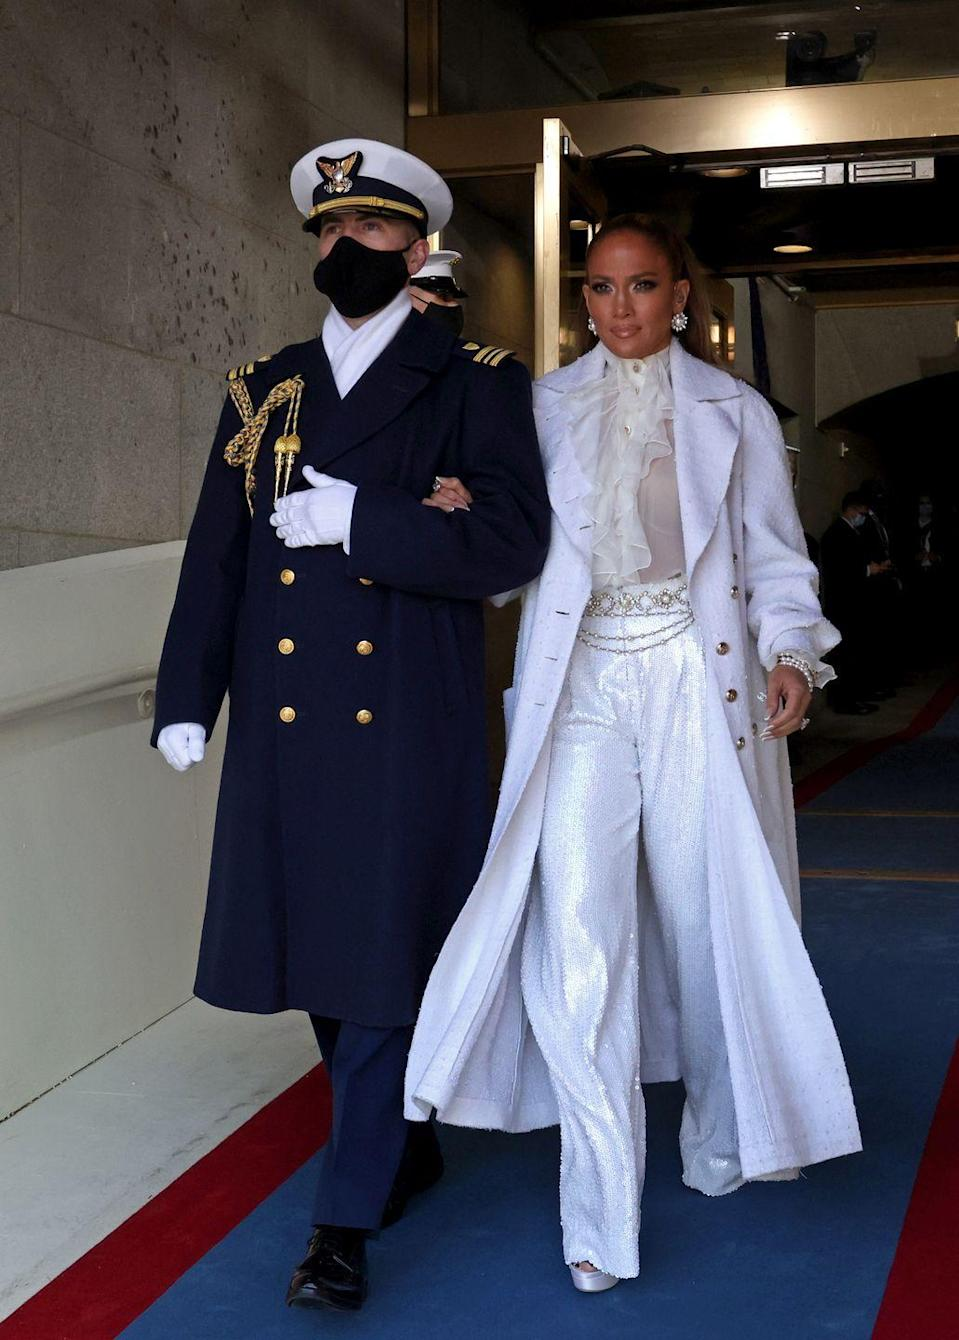 """<p>White clothing has historically paid homage to the women's suffrage movement in America, and Jennifer Lopez rocked her all-white <a href=""""https://www.chanel.com/us/"""" rel=""""nofollow noopener"""" target=""""_blank"""" data-ylk=""""slk:Chanel"""" class=""""link rapid-noclick-resp"""">Chanel</a> pantsuit while performing a version of <em>This Land Is Your Land </em>after Joe Biden's swearing-in as the 46th President of the United States. The look included pieces shown at <a href=""""https://www.veranda.com/luxury-lifestyle/luxury-fashion-jewelry/a34918791/chateau-de-chenonceau/"""" rel=""""nofollow noopener"""" target=""""_blank"""" data-ylk=""""slk:Chanel's 2020 Metier d'Arts show"""" class=""""link rapid-noclick-resp"""">Chanel's 2020 Metier d'Arts show</a>, which was held at Chenonceau.</p>"""